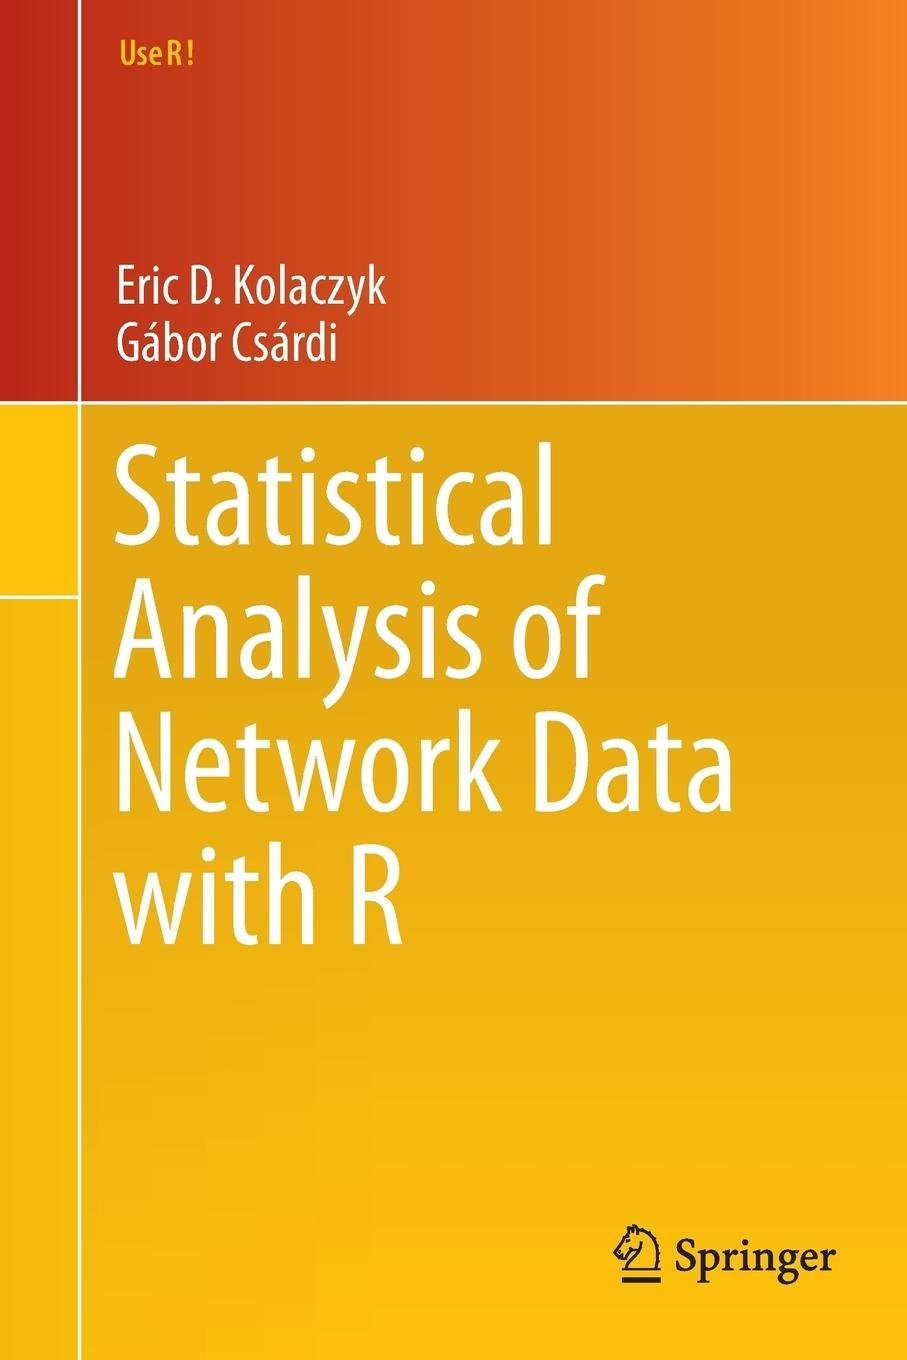 Statistical Analysis of Network Data with R (Use R!): Amazon